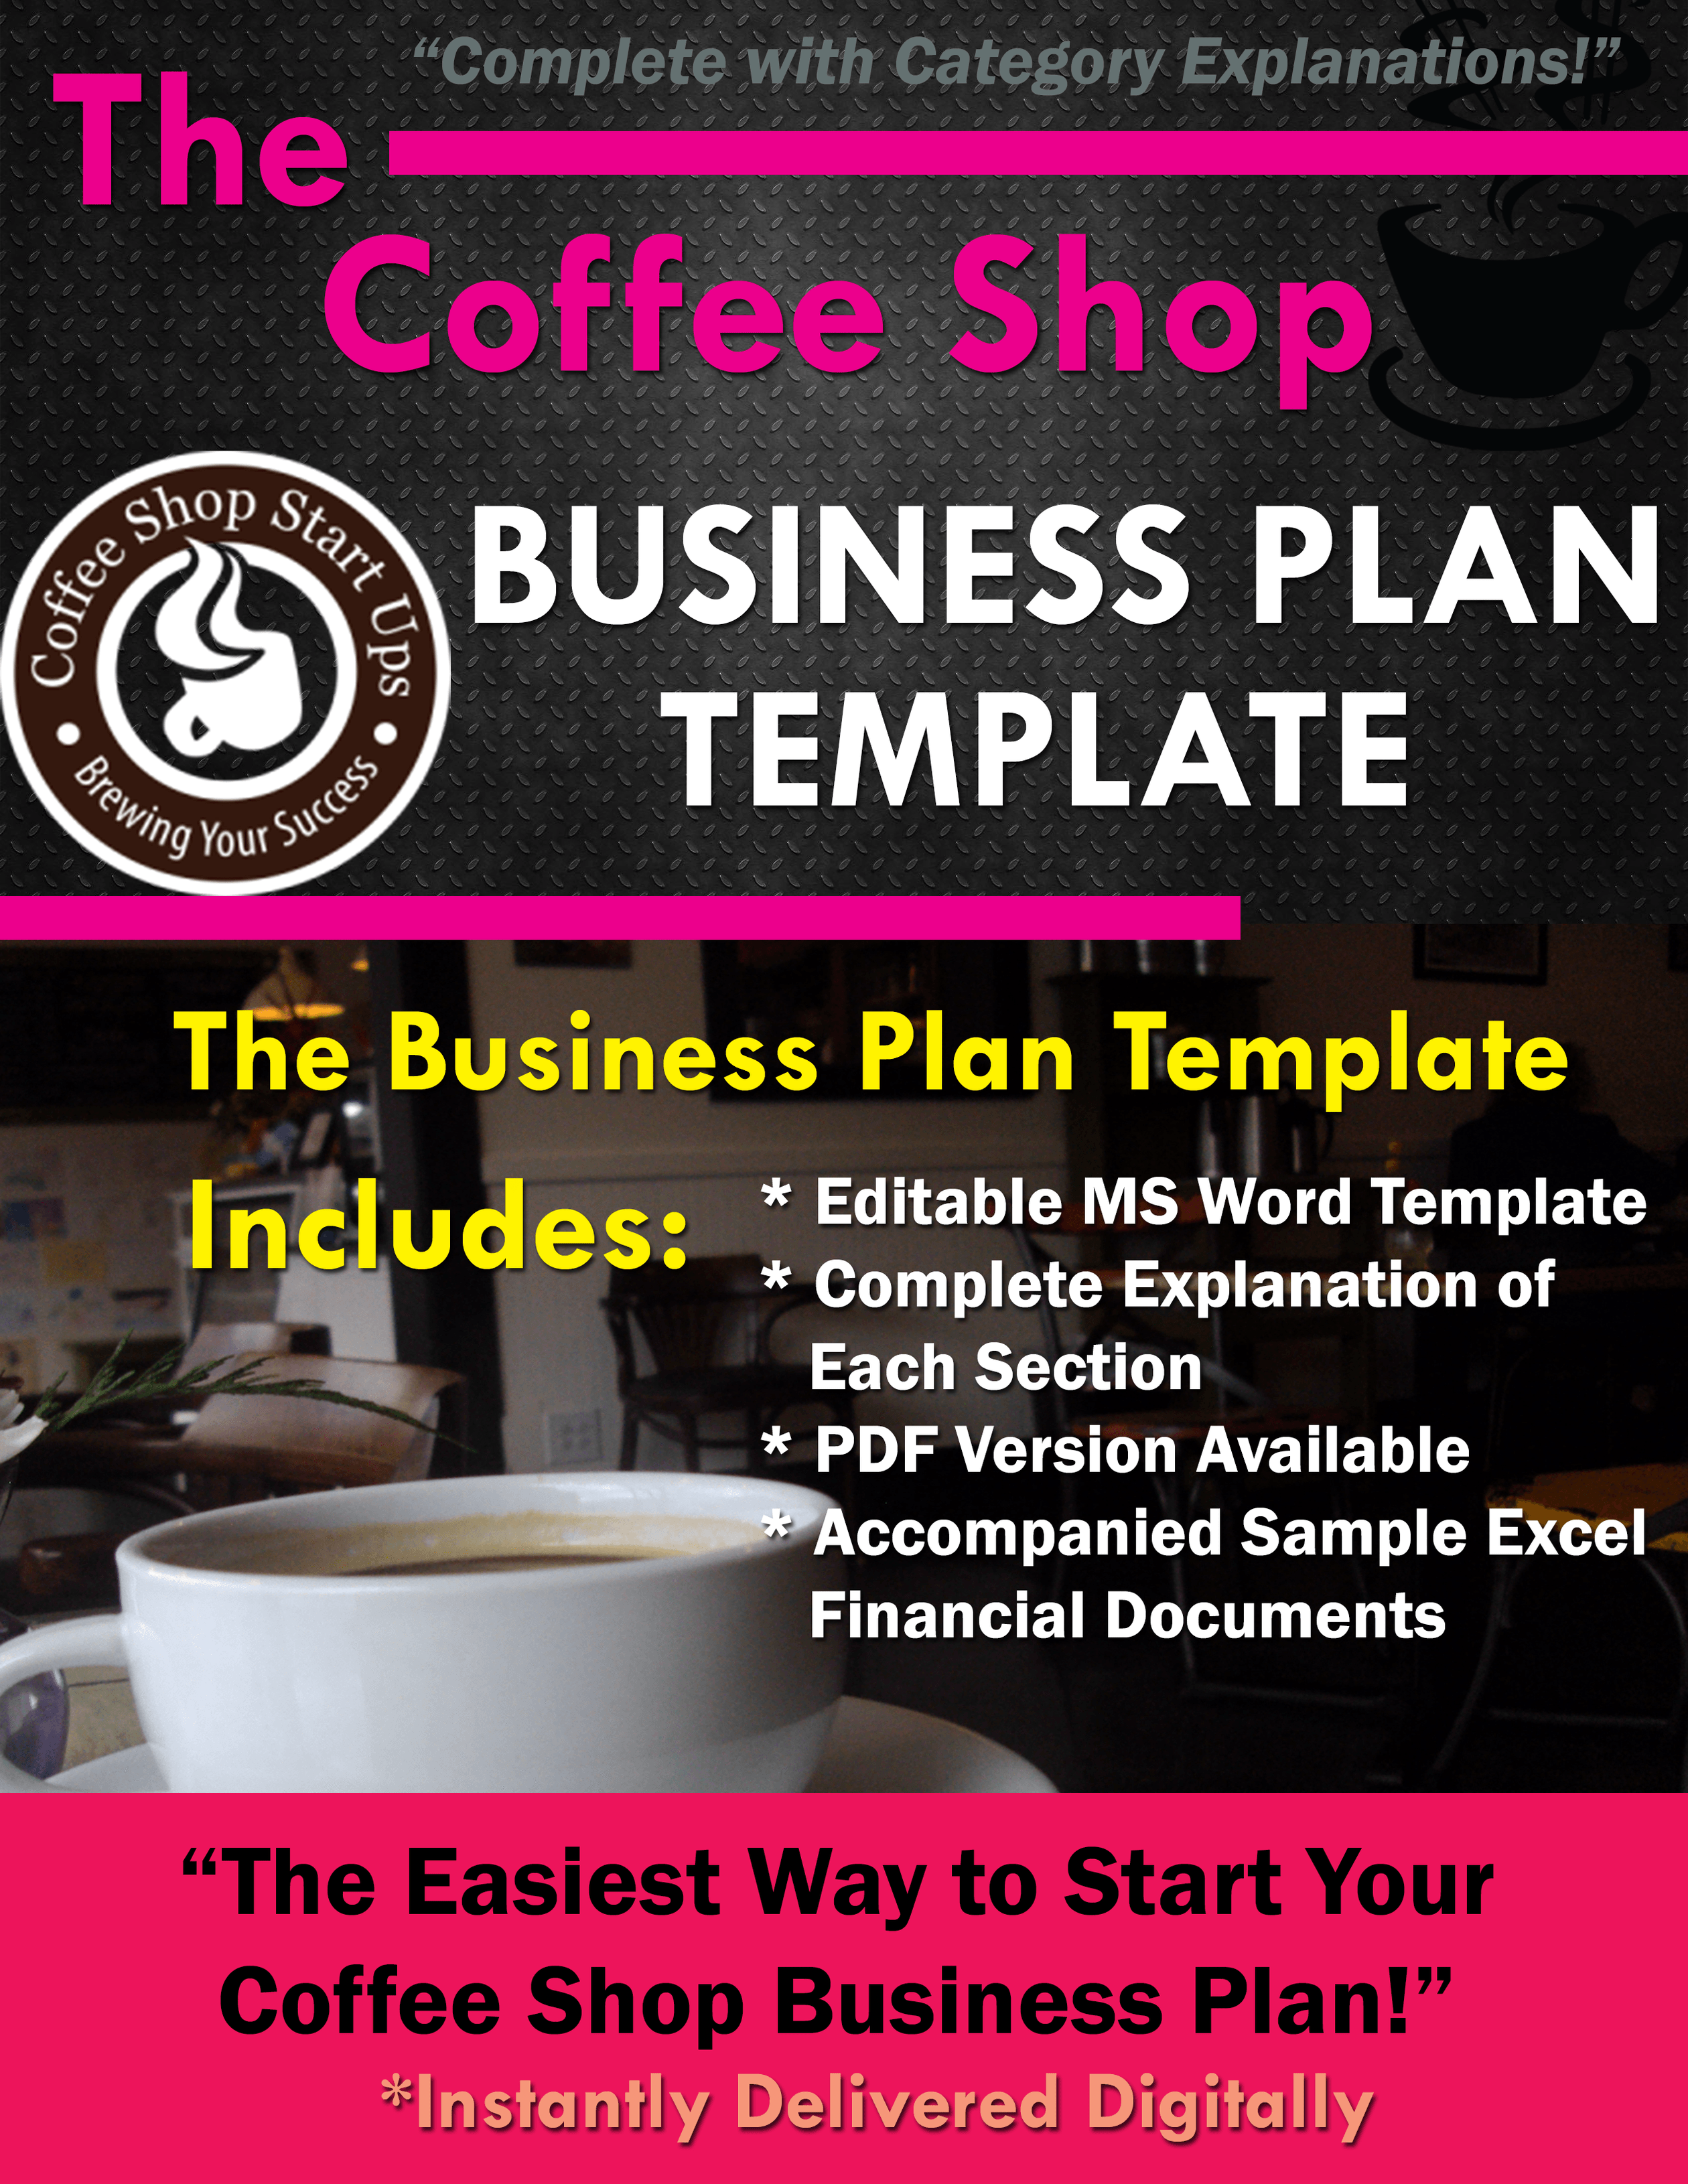 Coffee shop business plan write your business plan for your coffee coffee shop business plan write your business plan for your coffee shop fbccfo Choice Image